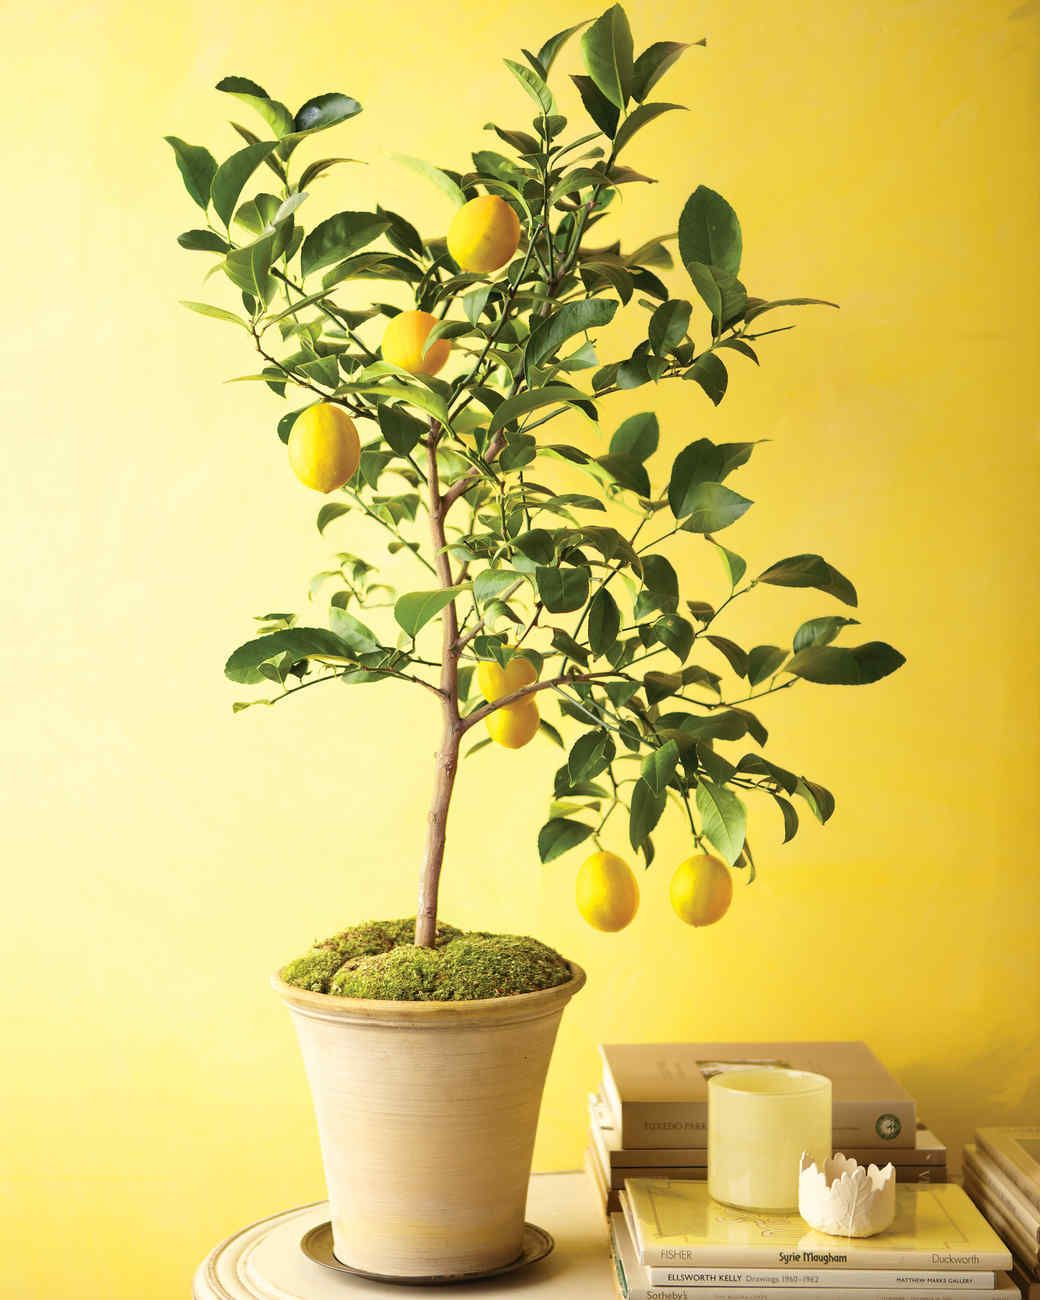 How To Grow Citrus Indoors Growing Fruit Trees Indoor Lemon Tree How To Grow Lemon